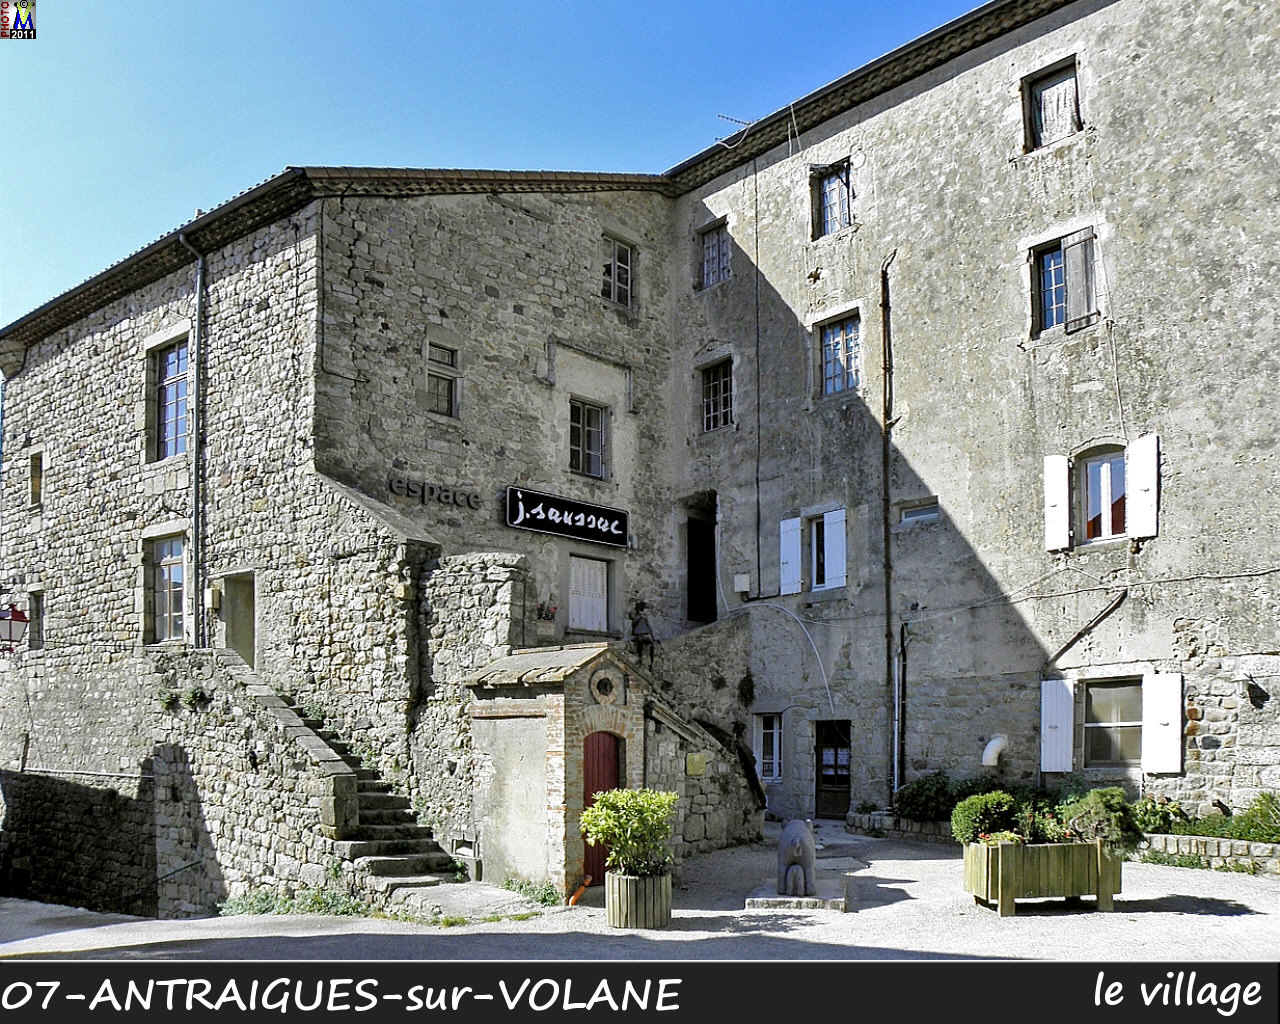 07ANTRAIGUES-VOLANE_village_106.jpg